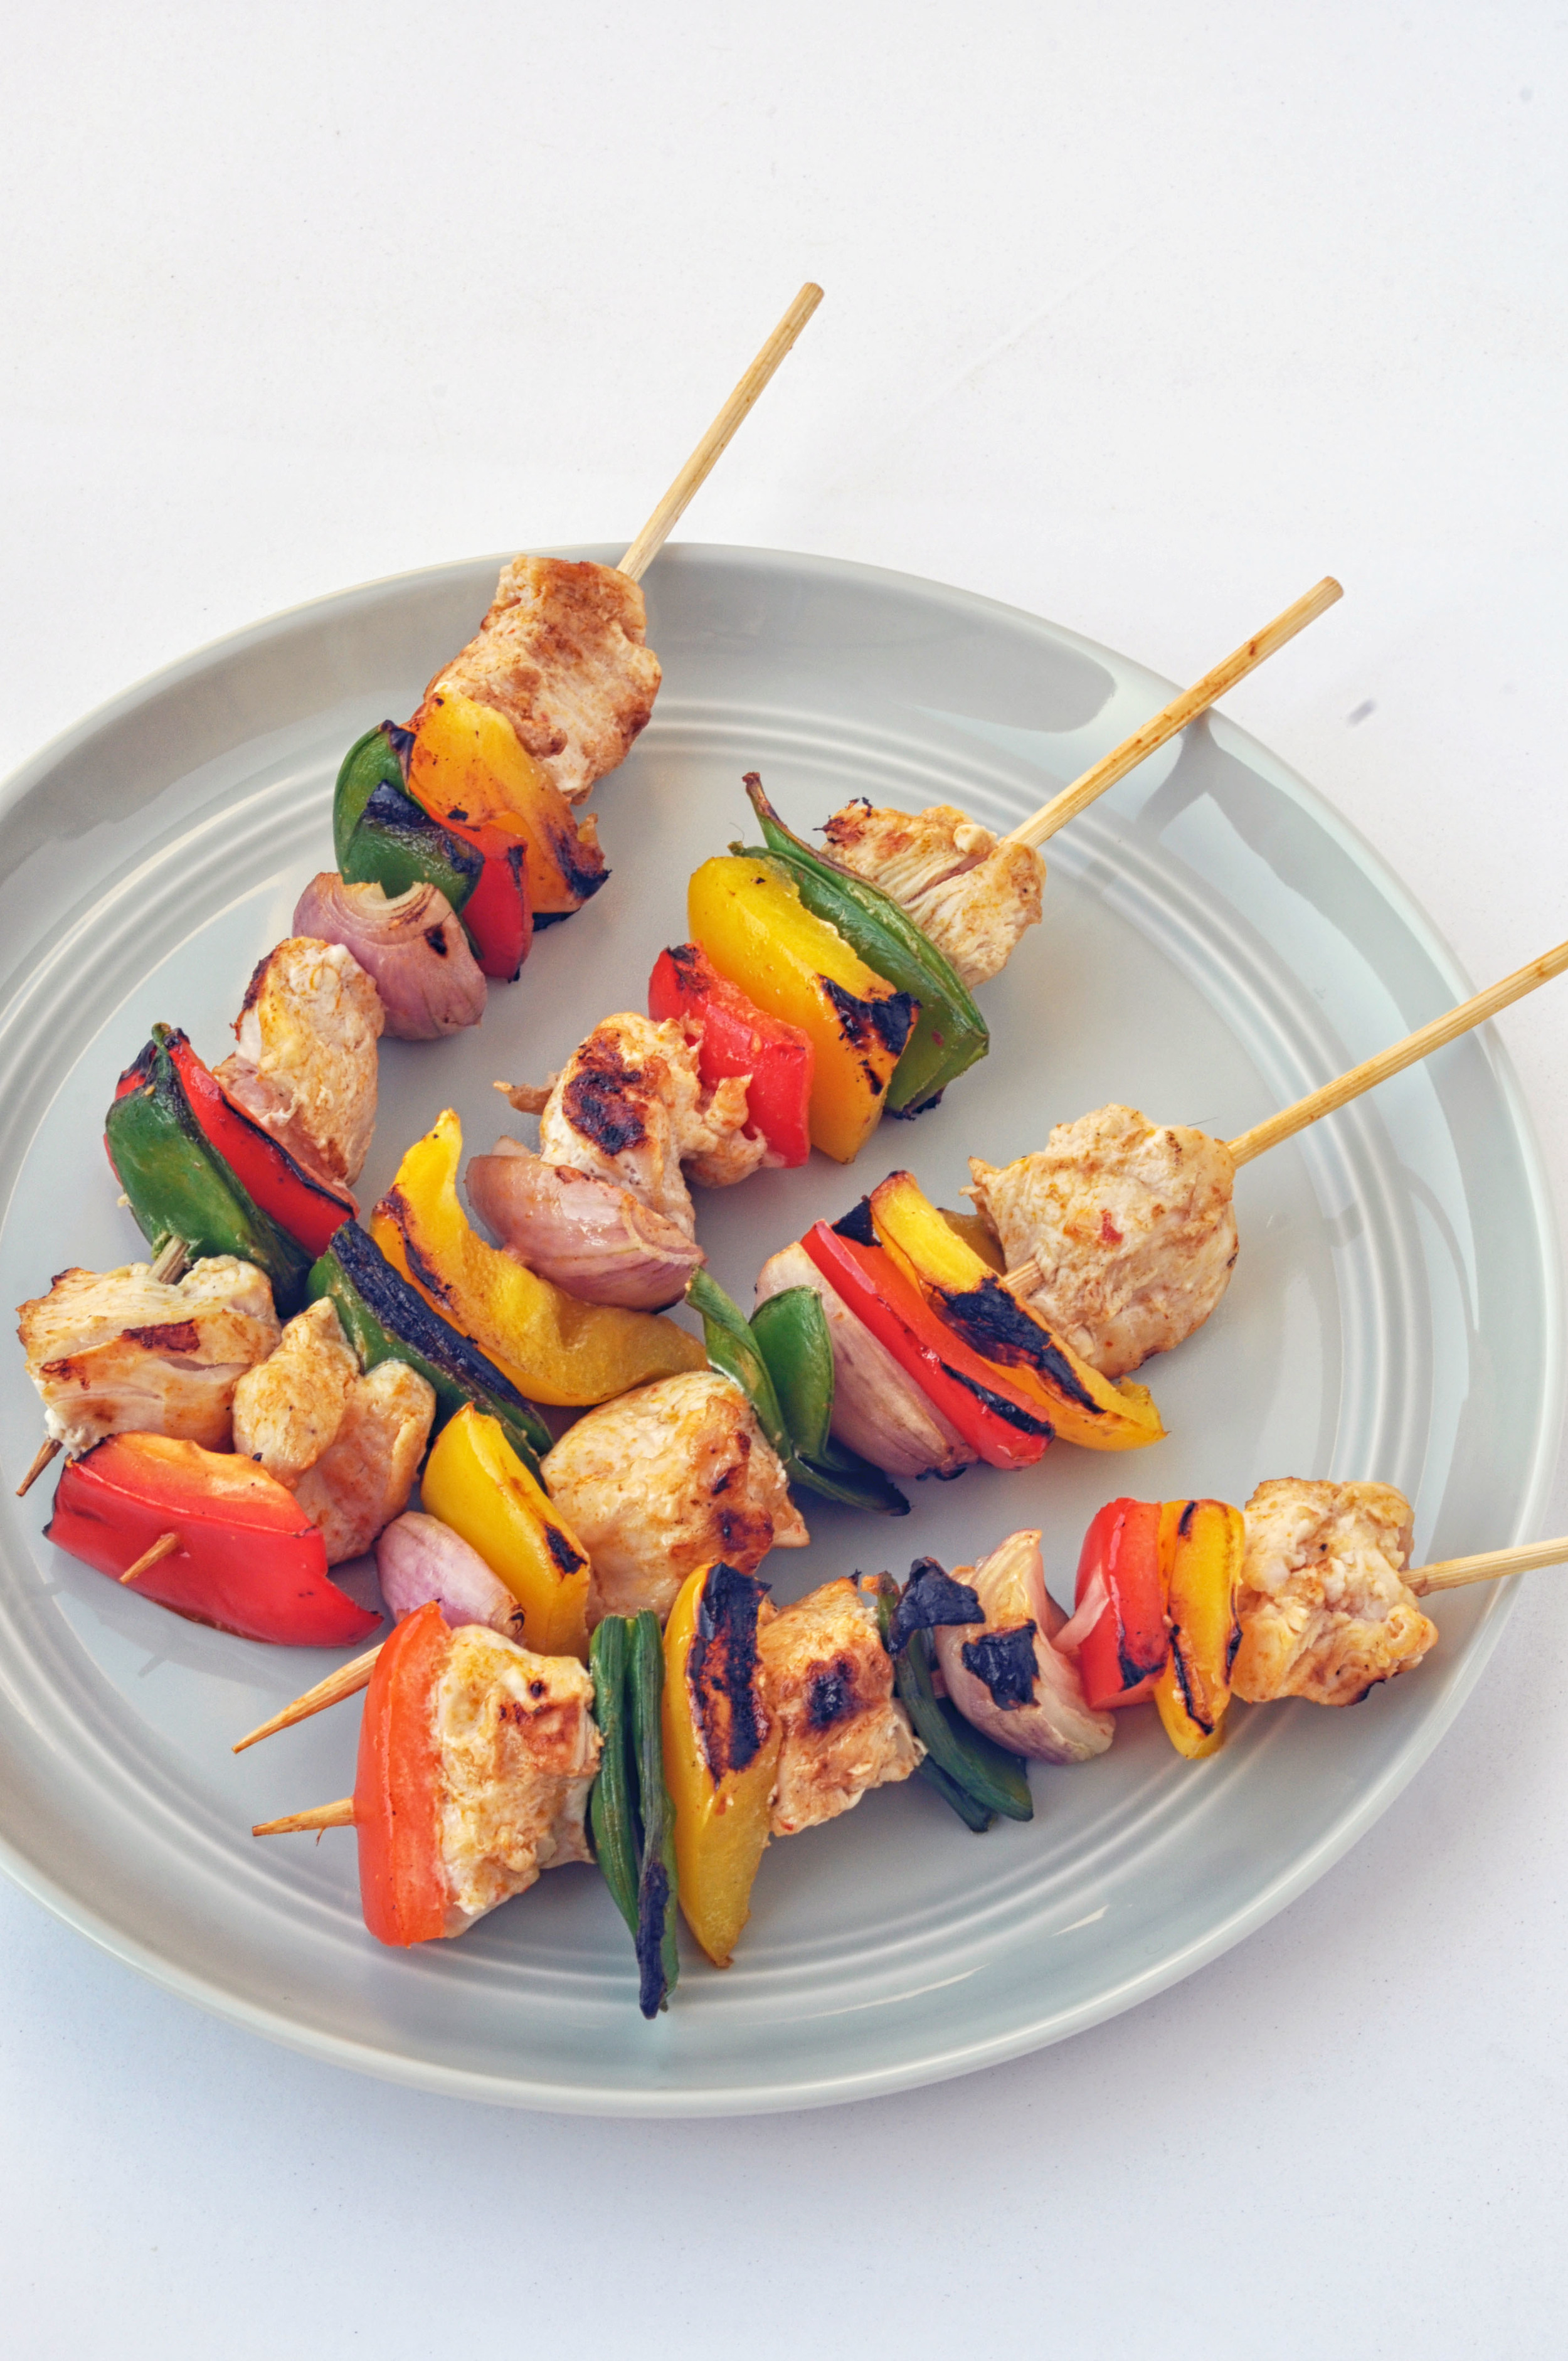 Thai Red Curry Chicken Skewers - These Thai red curry chicken skewers are easy, gluten free, delicious, and healthy.